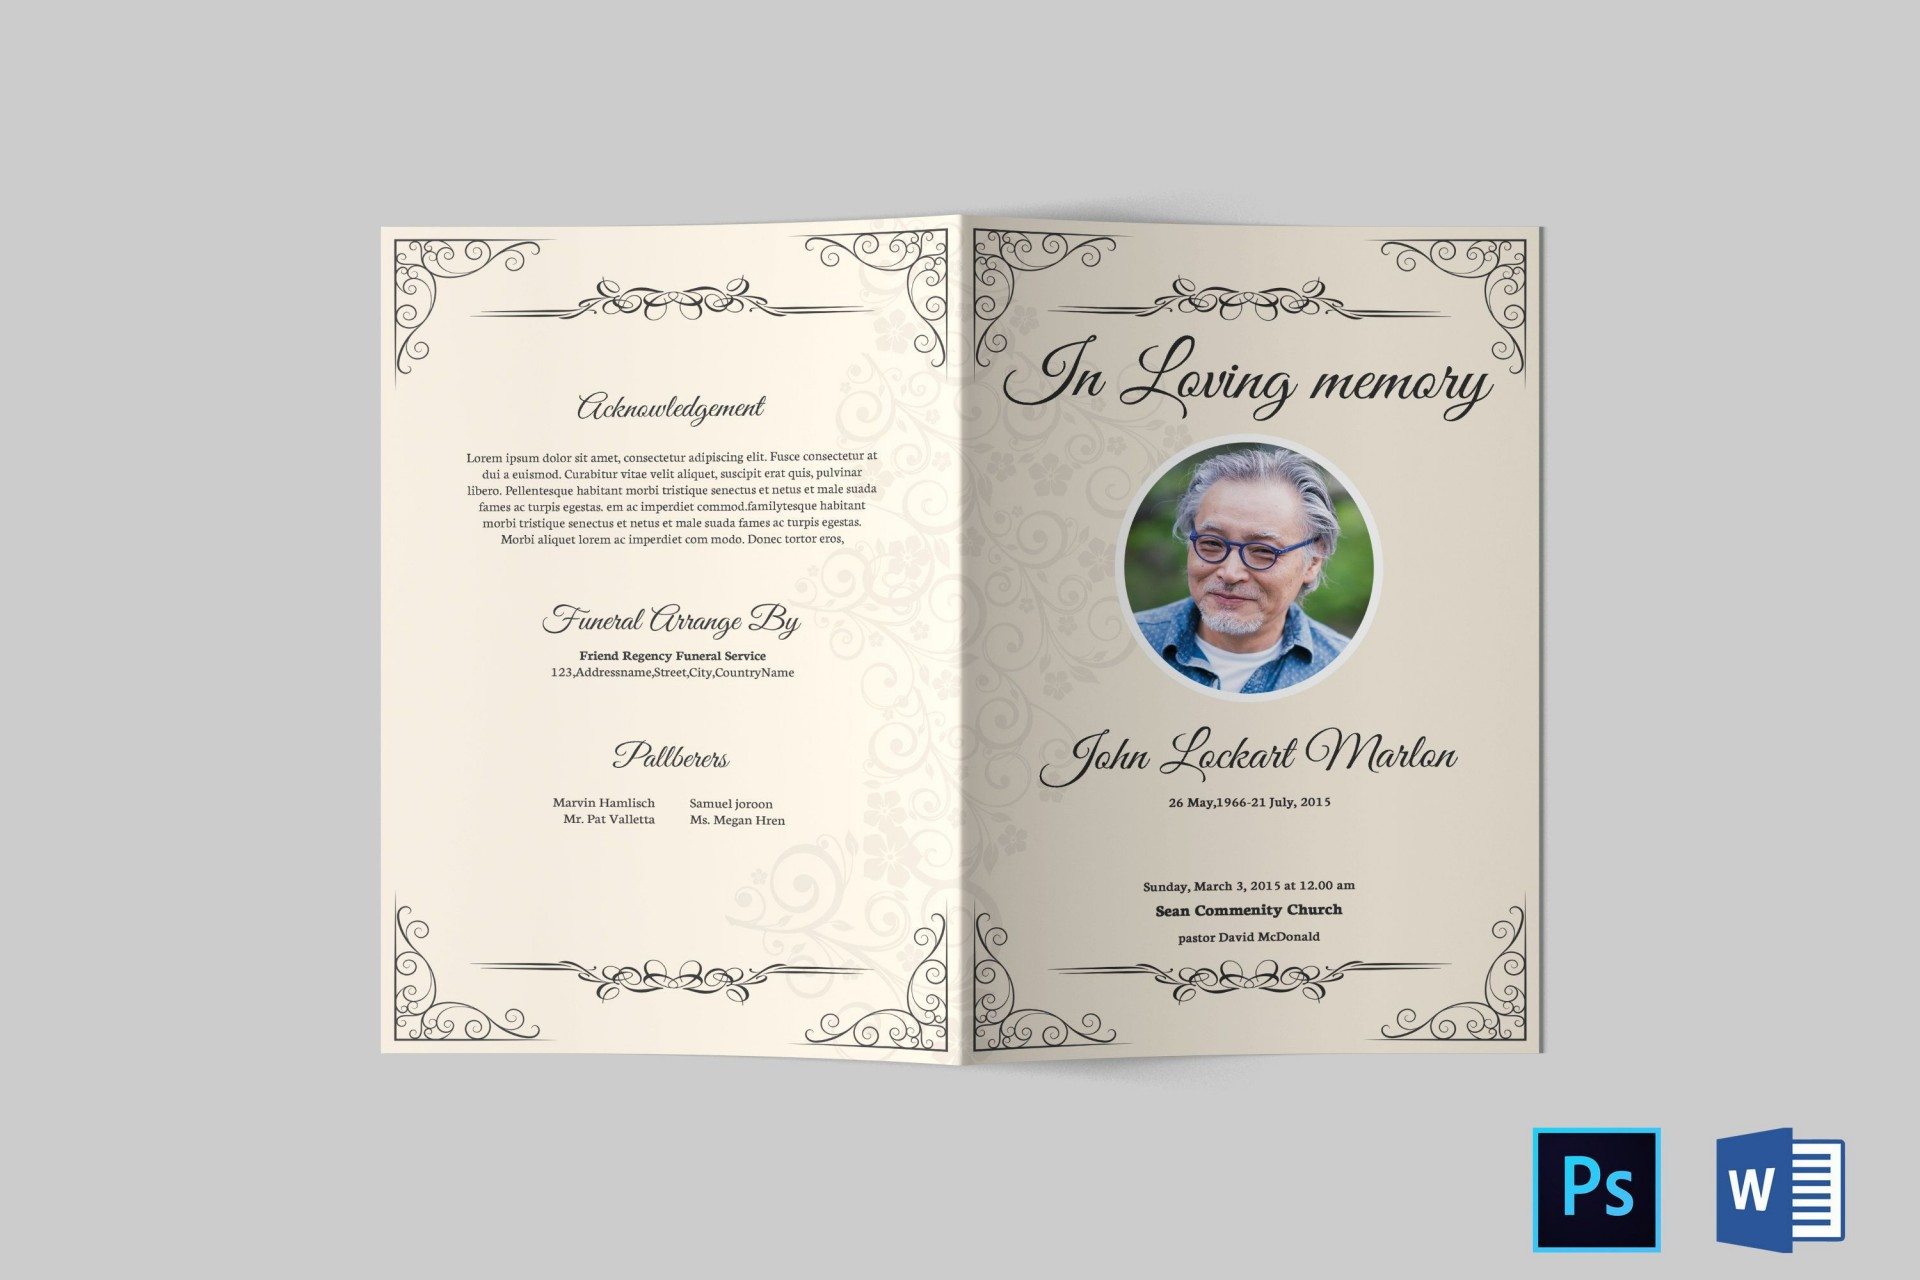 000 Top Template For Funeral Program On Word Photo  2010 Free Sample Wording1920